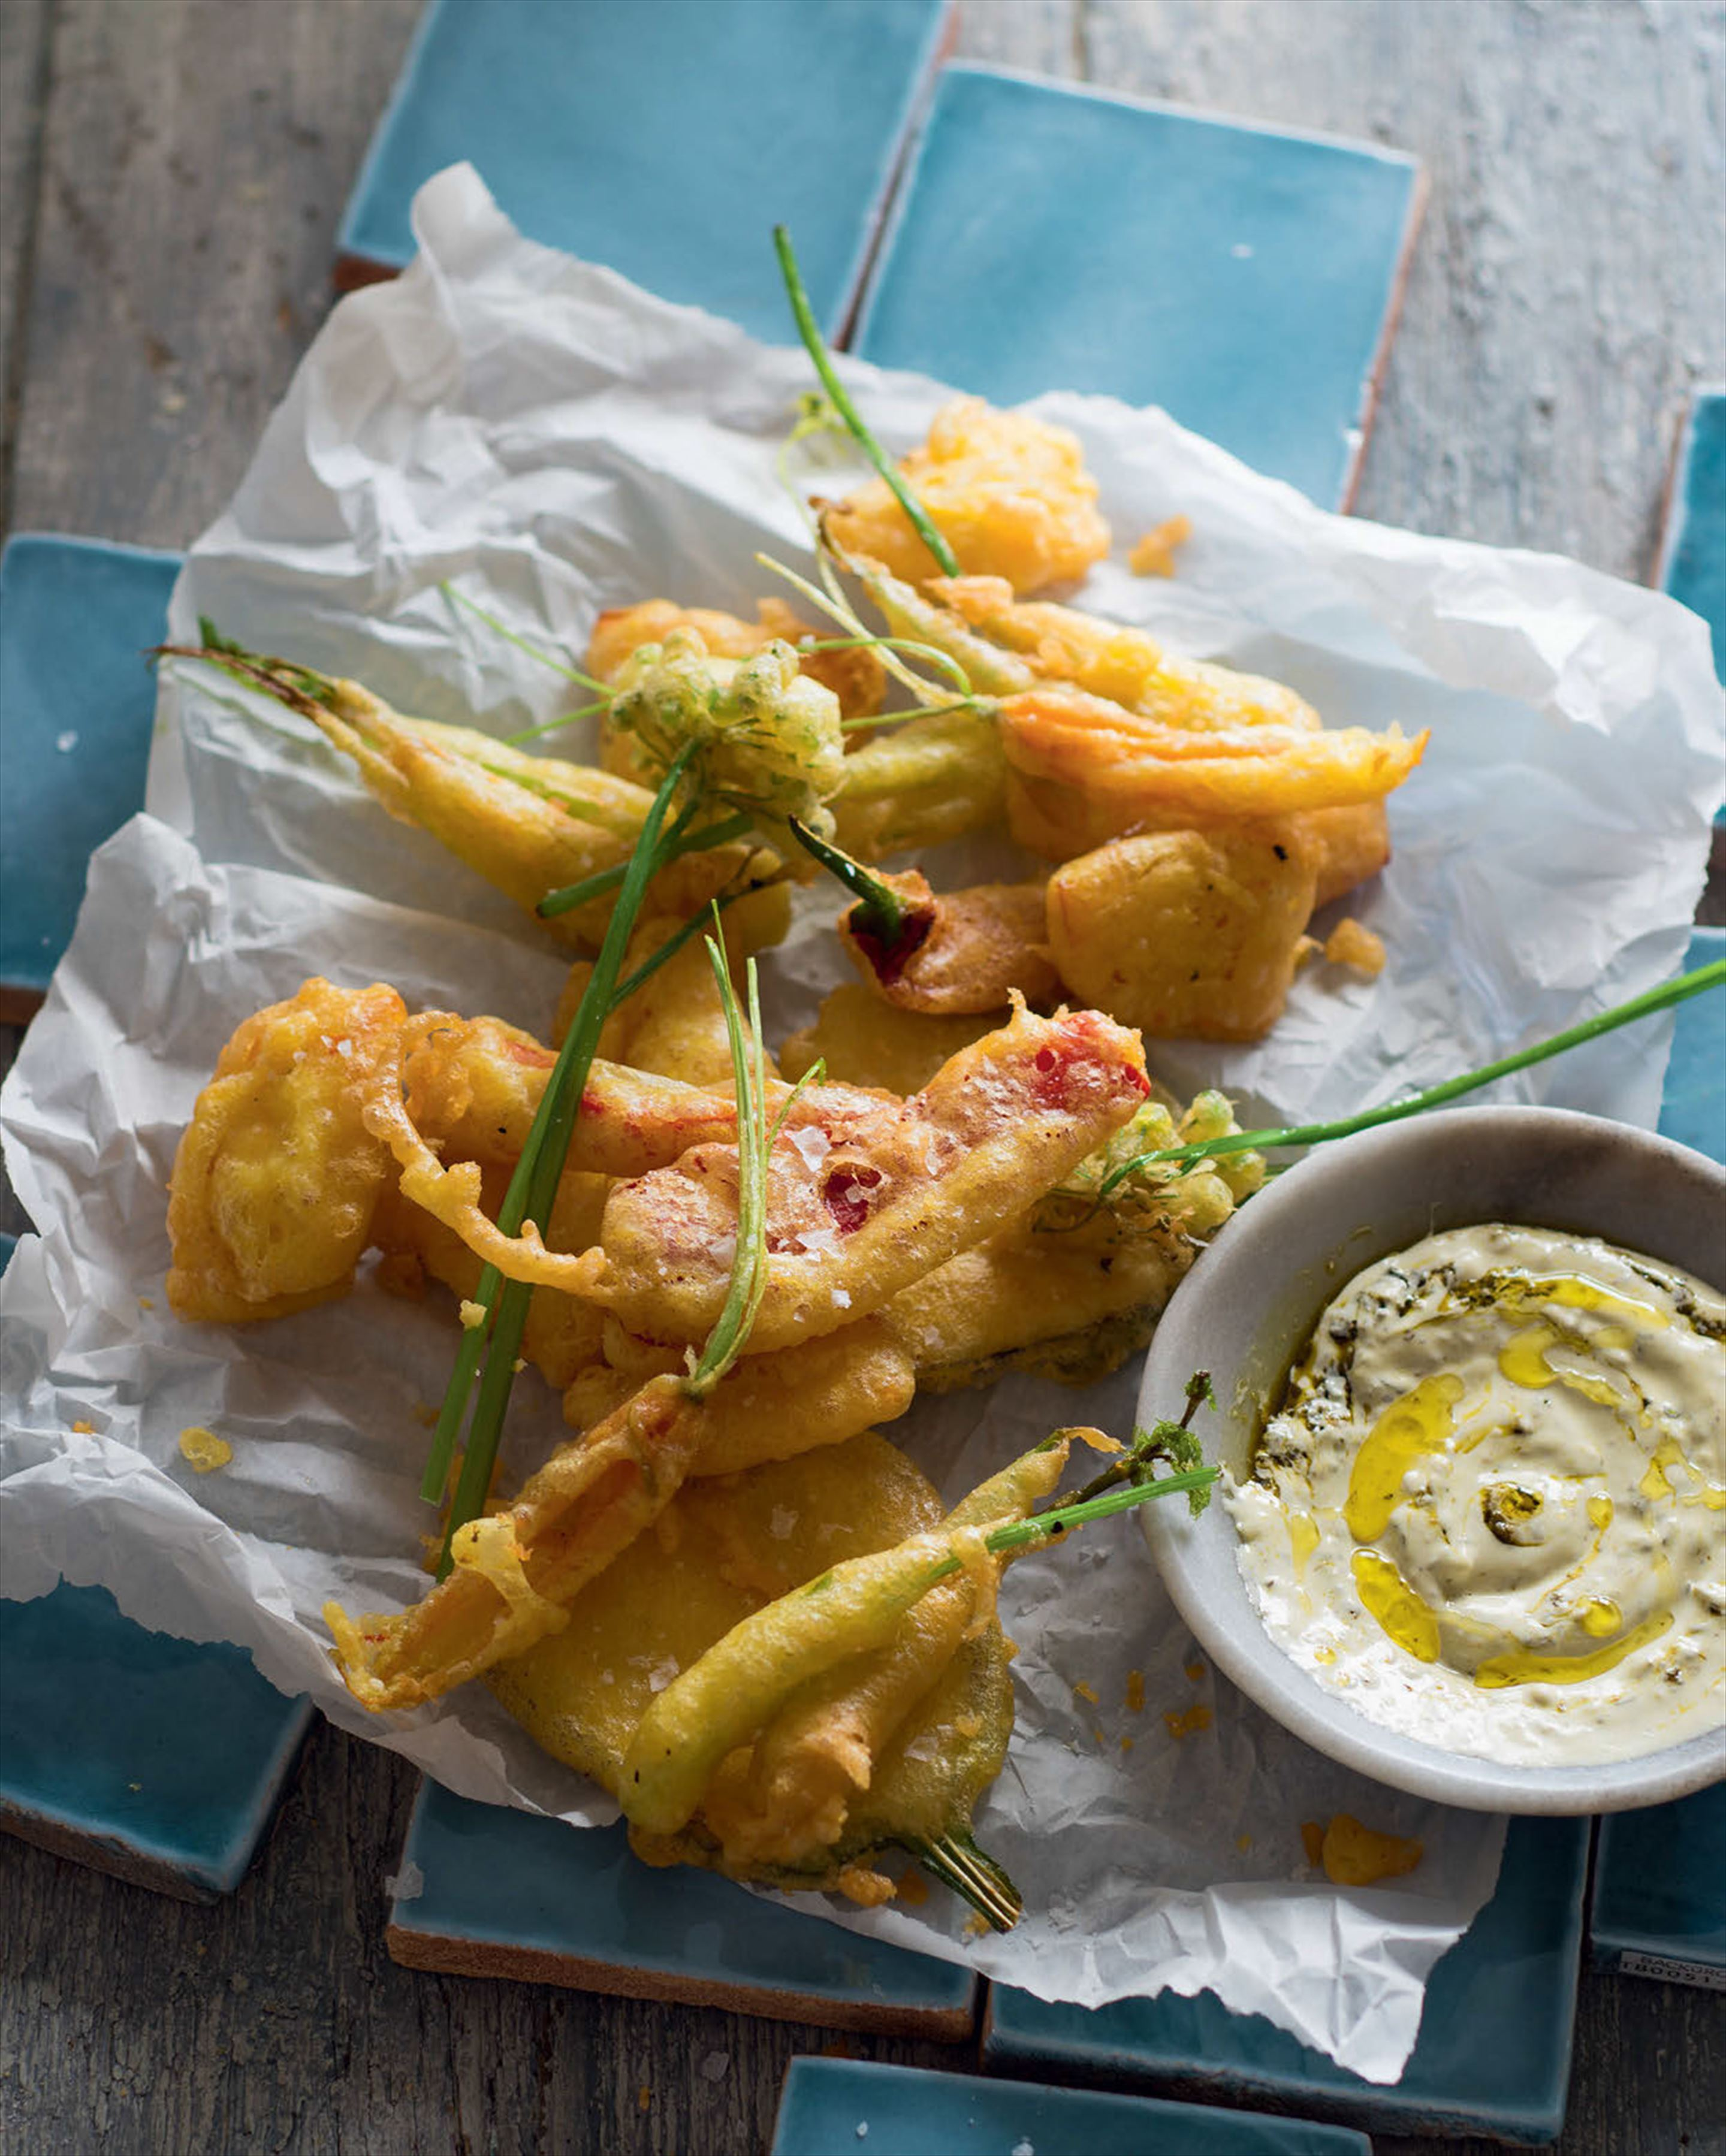 Vegetable 'fritto misto' in saffron-yeast batter